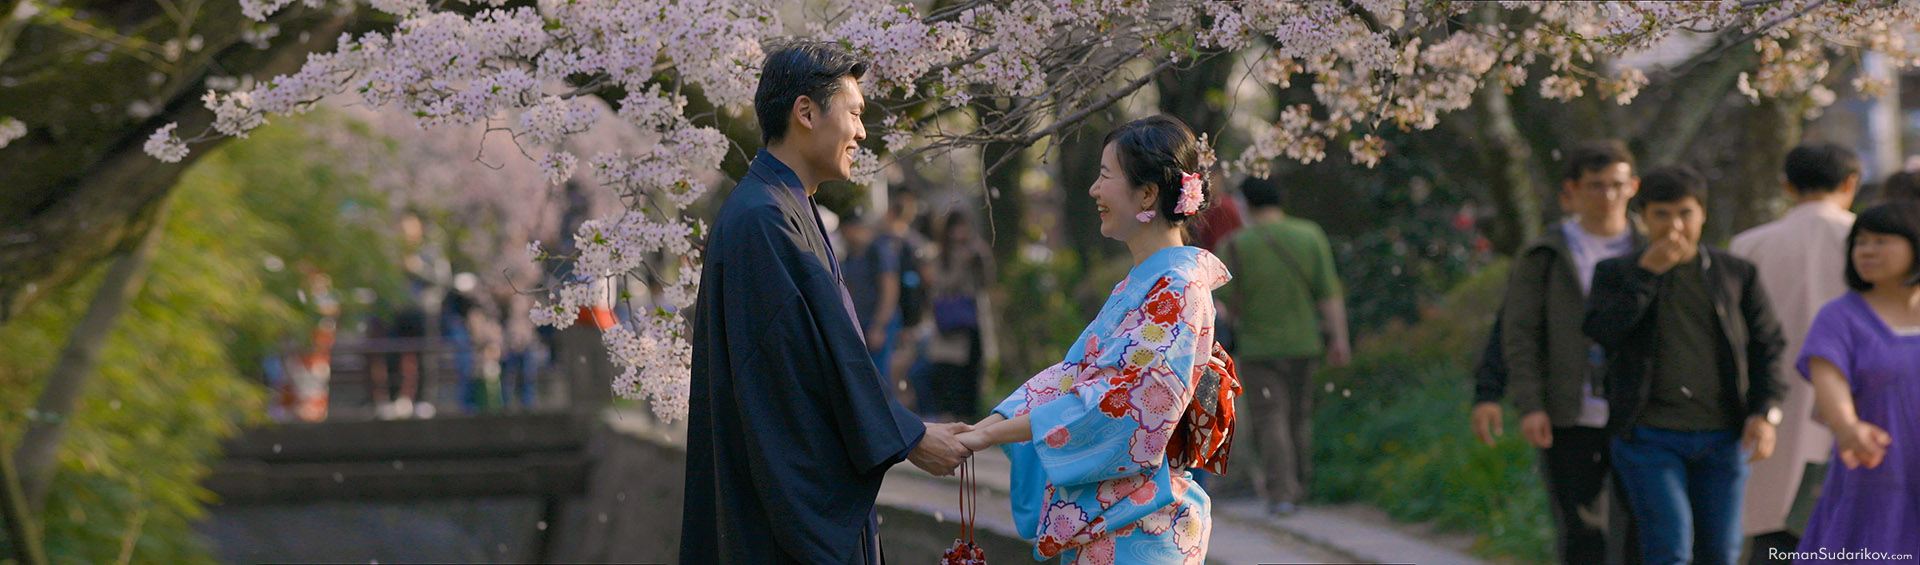 Young couple in beautiful kimono is enjoying each other's company under cherry blossom trees at Philosopher's Path in Kyoto.